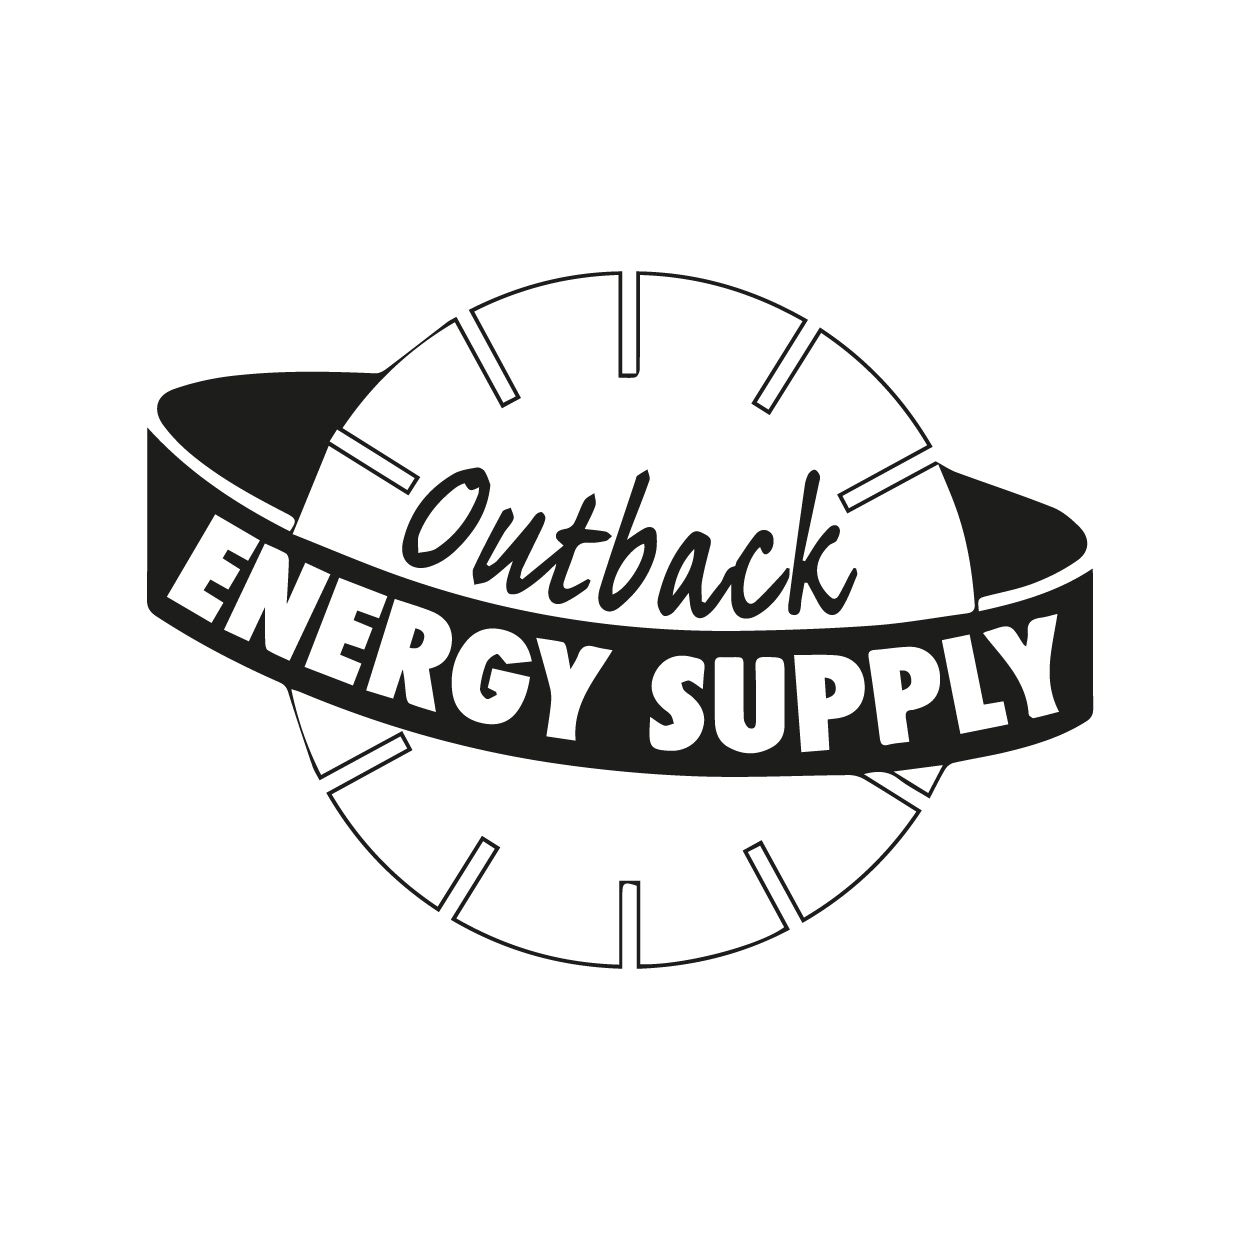 Outback Energy Supply